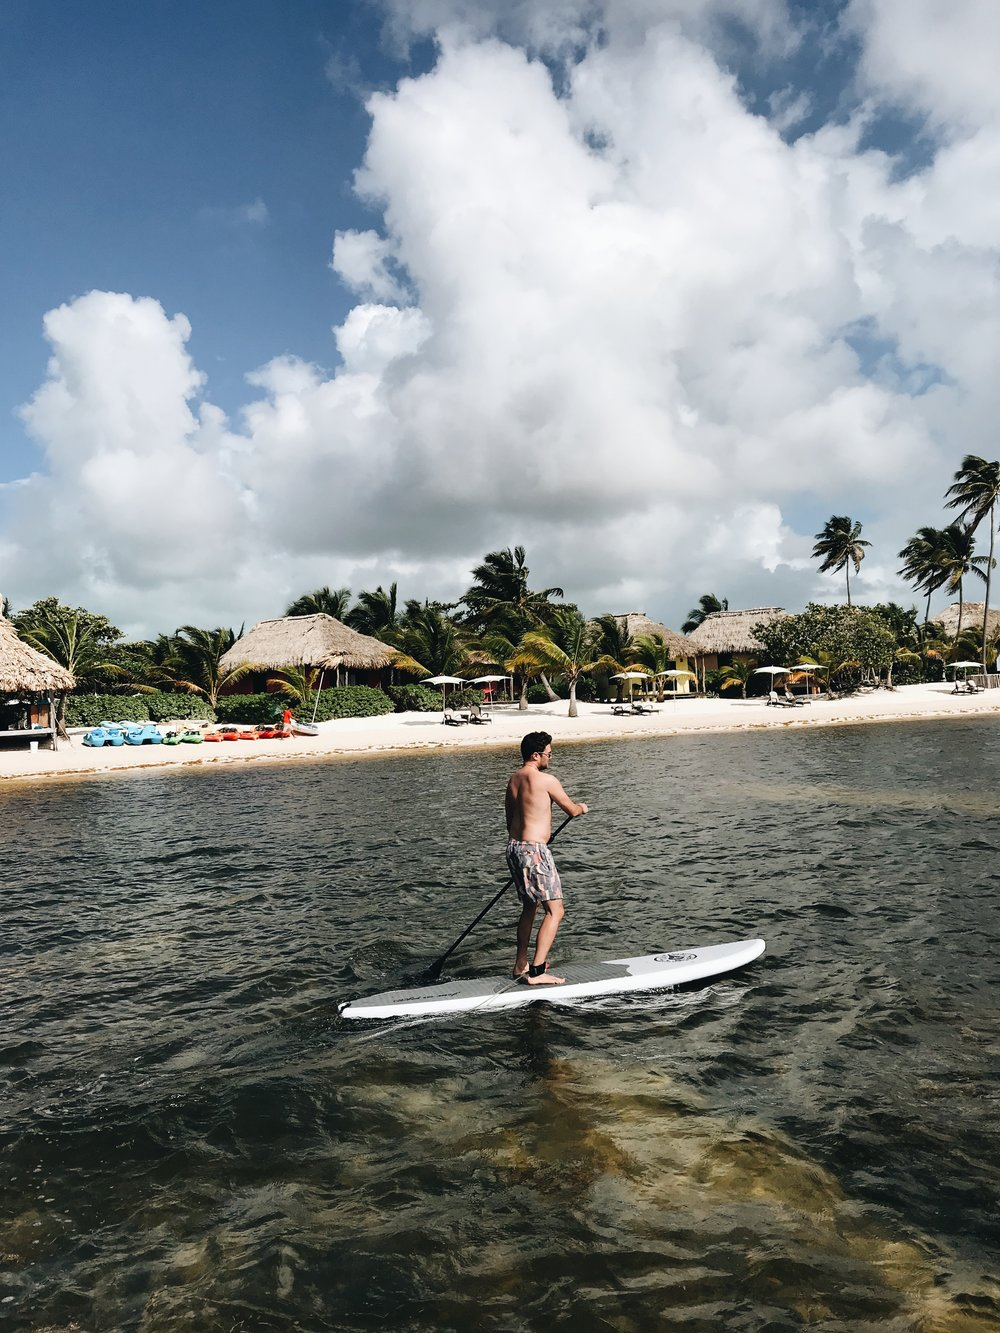 Paddle Boarding at Matachica Resort, Belize